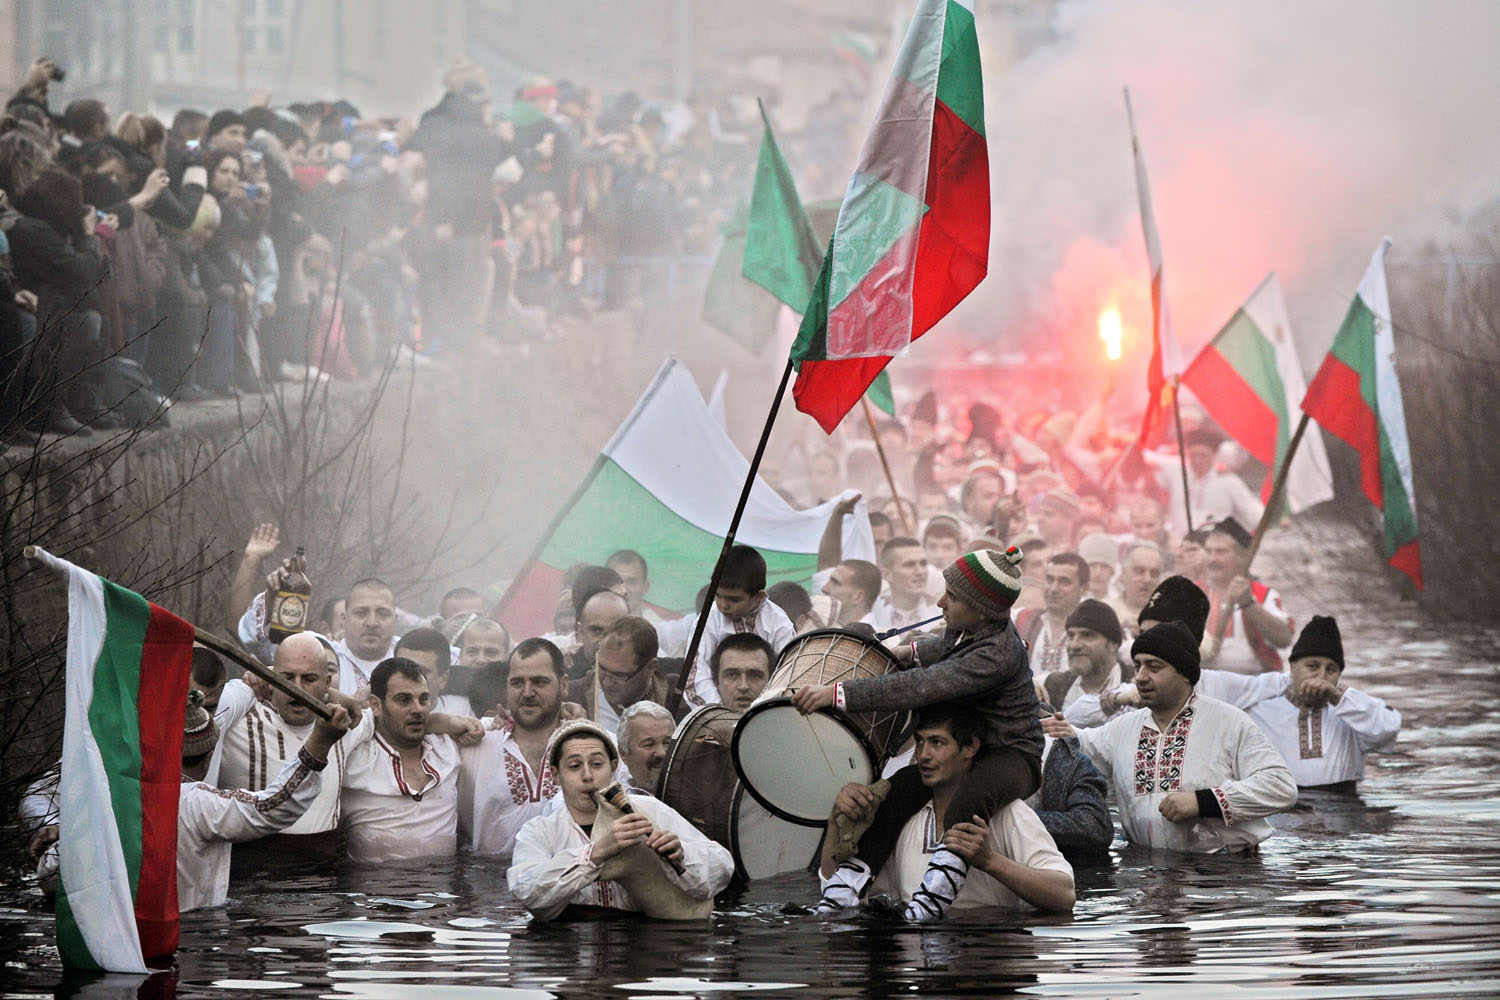 Jan. 6, 2014. Men perform a traditional dance in the icy winter waters of the Tundzha river in the town of Kalofer as part of the Epiphany Day celebrations.